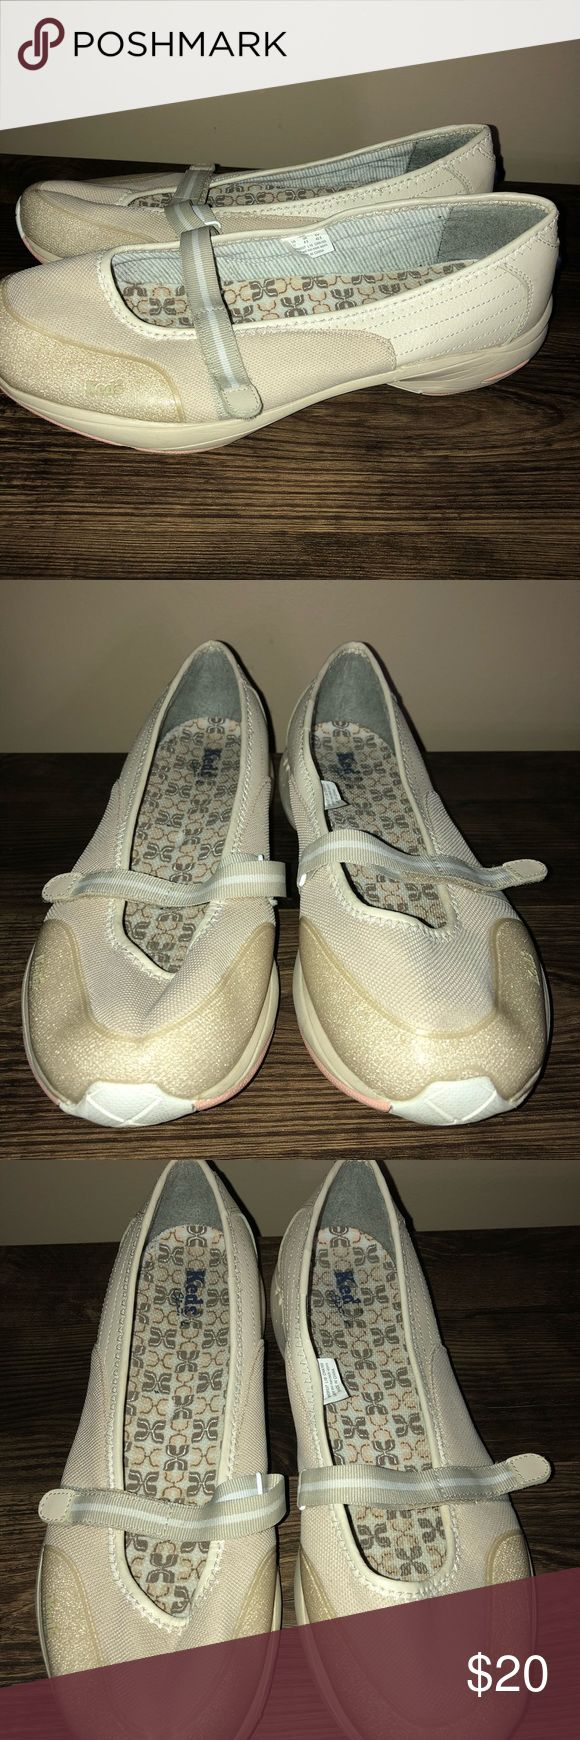 Keds Size 11 Beige Slipon Skid Resis Walking Shoes This pair of shoes is up for sale! Great condition! Cute!  ❤ Off-white, like a creamy color ❤ Slipon, no ties ❤ stylish yet functional  ❤ Size Measured in Pictures 🔍📏   ✅ Bundle up items and save 💲✅  ❤️I love reasonable offers. ❤️ 🎉 Pair w/jewelry, acc. or shoes🎉 🆕 New items every week! 🆕  I'm a mama on a mission. I sell items online to support my 2 sons. Every purchase is important to us. Thanks for your support. Keds Shoes Athletic…